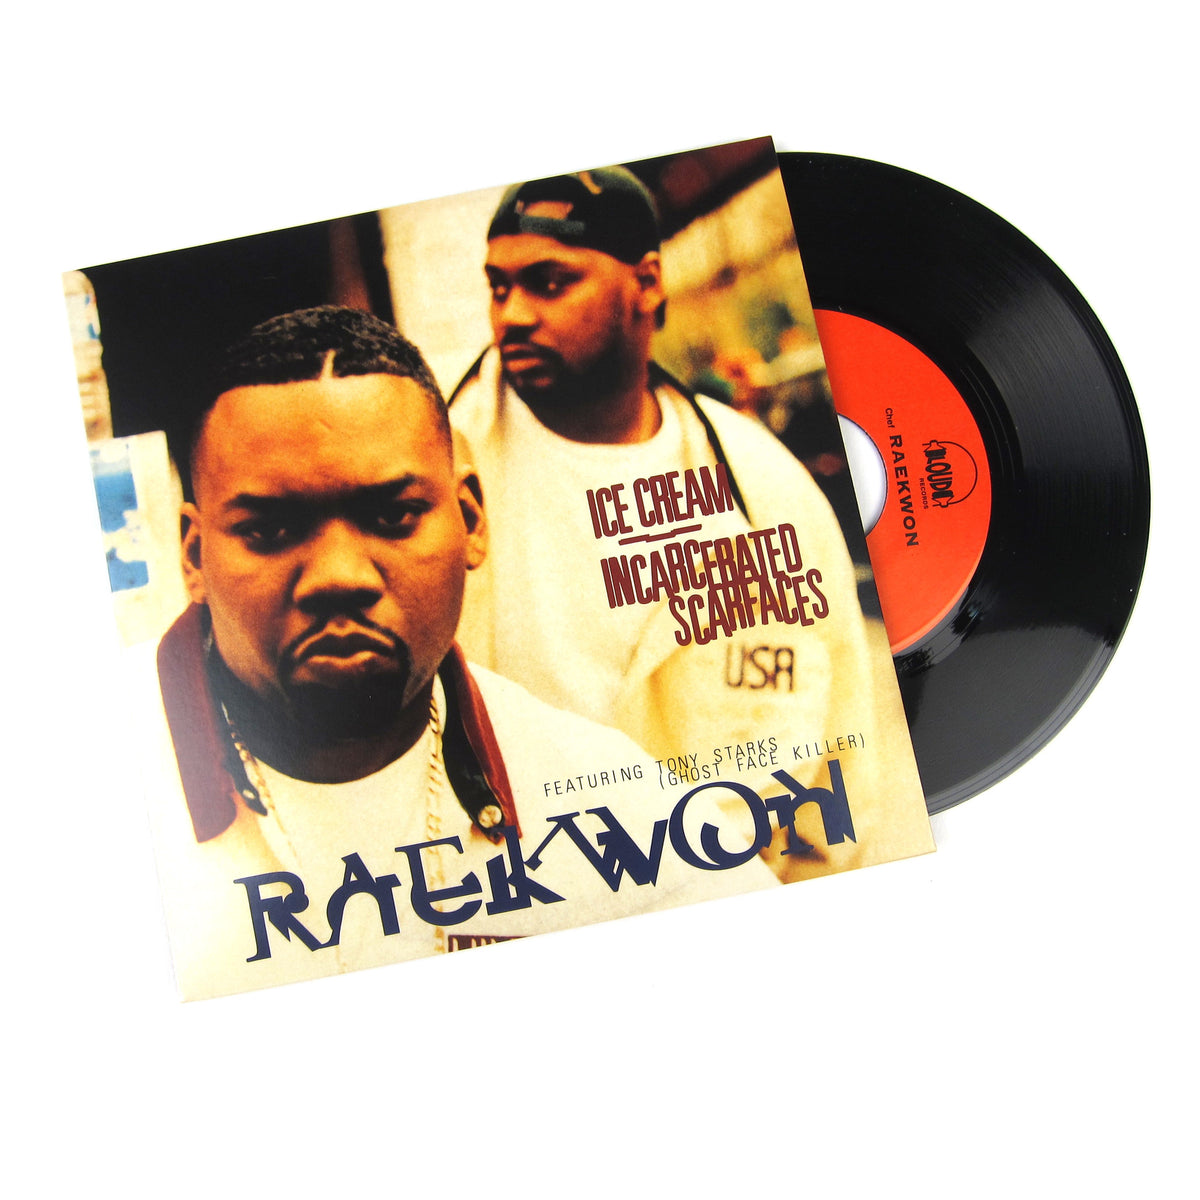 Raekwon: Ice Cream / Incarcerated Scarfaces Vinyl 7""